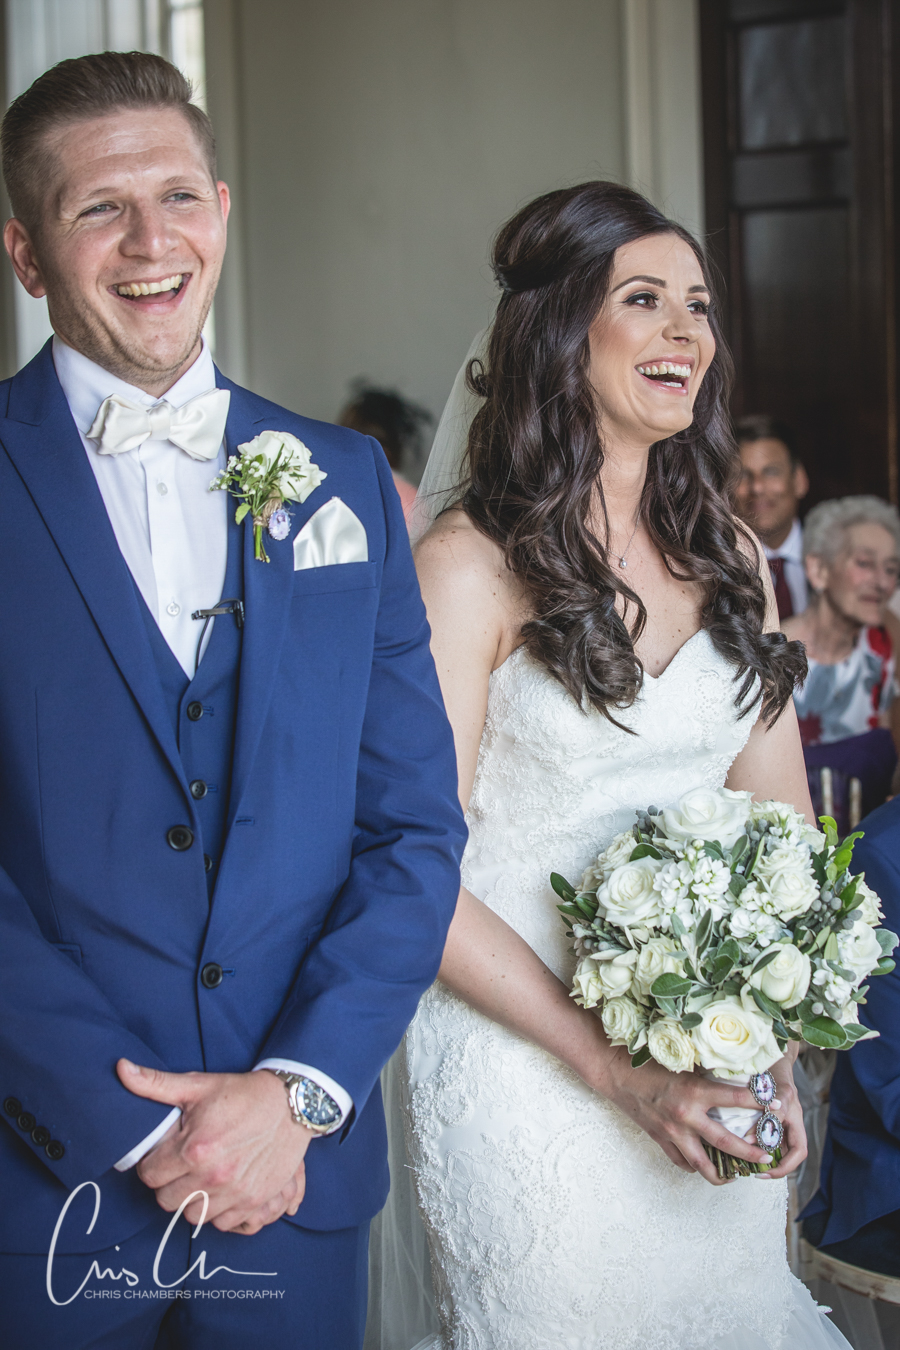 Stubton Park wedding photographer, Award winning Wedding photographer, Stubton Wedding photography, Stubton